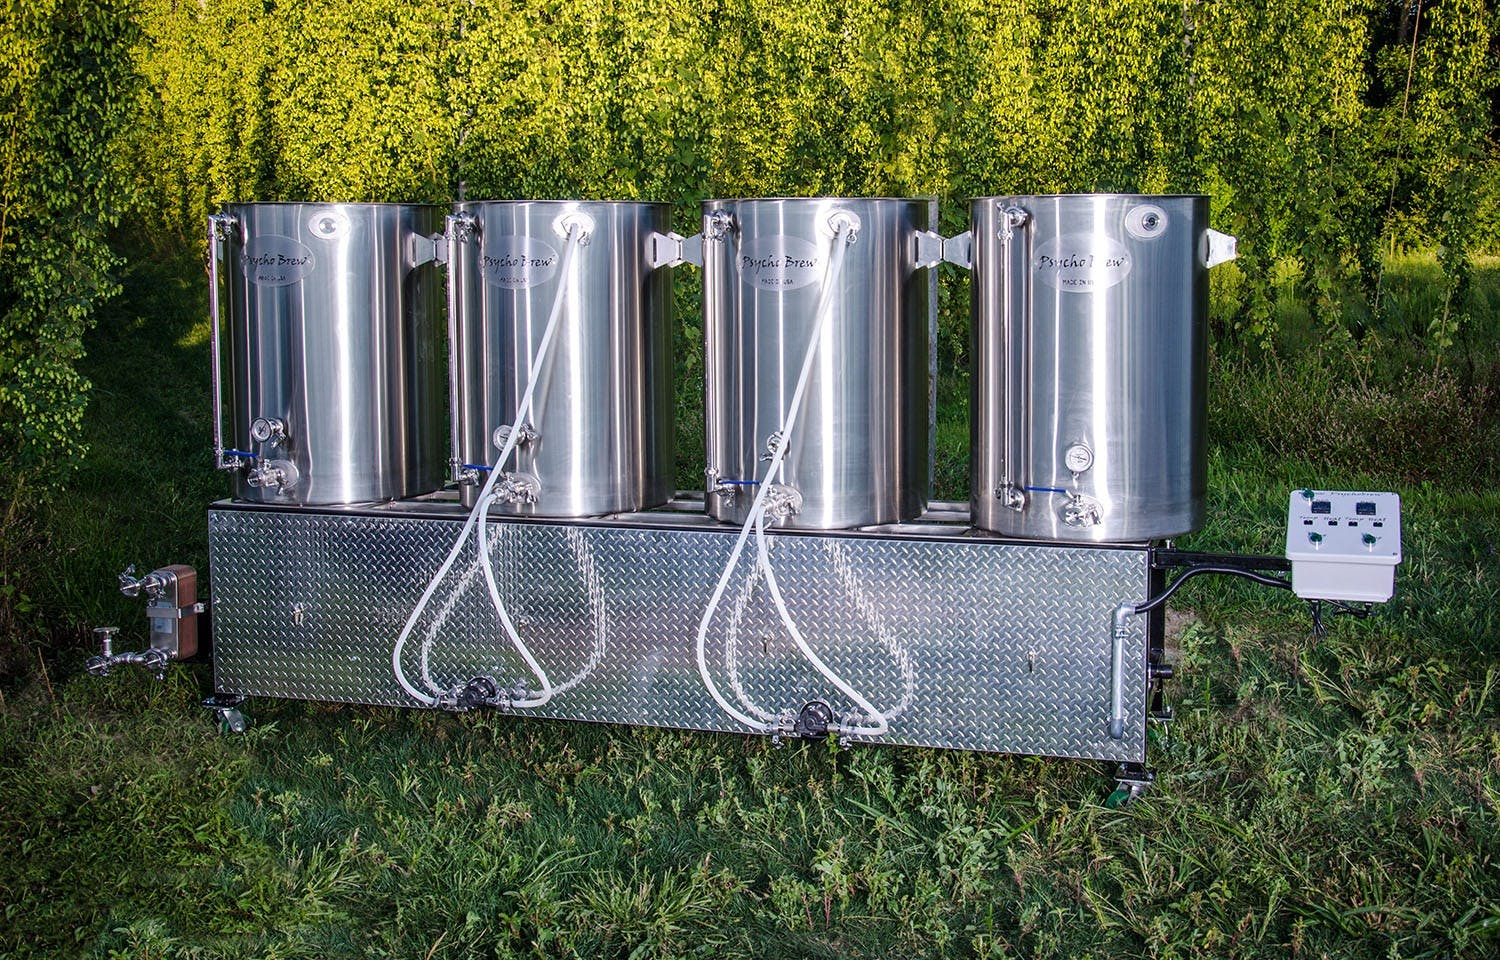 Beast 100 5 bbl 4 burner complete pilot brew system - sold by Psycho Brew